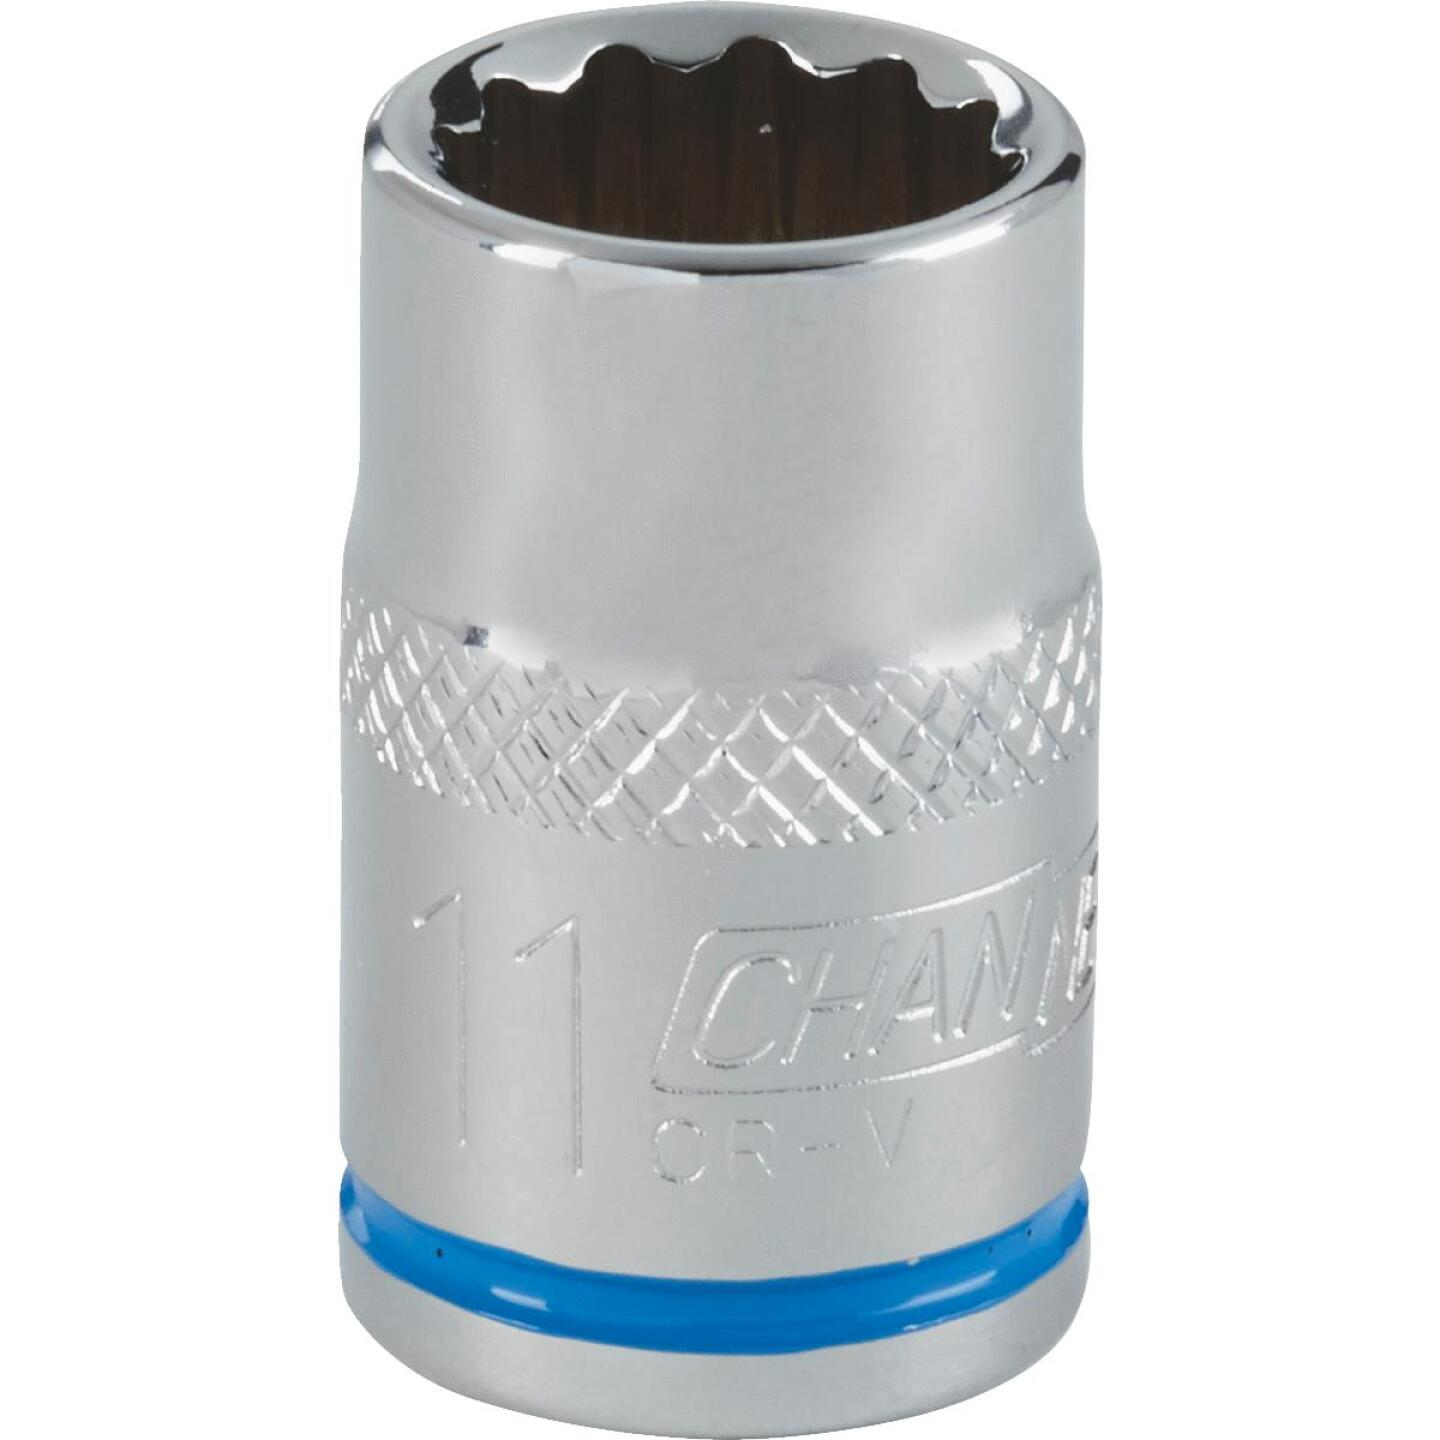 Channellock 3/8 In. Drive 11 mm 12-Point Shallow Metric Socket Image 1